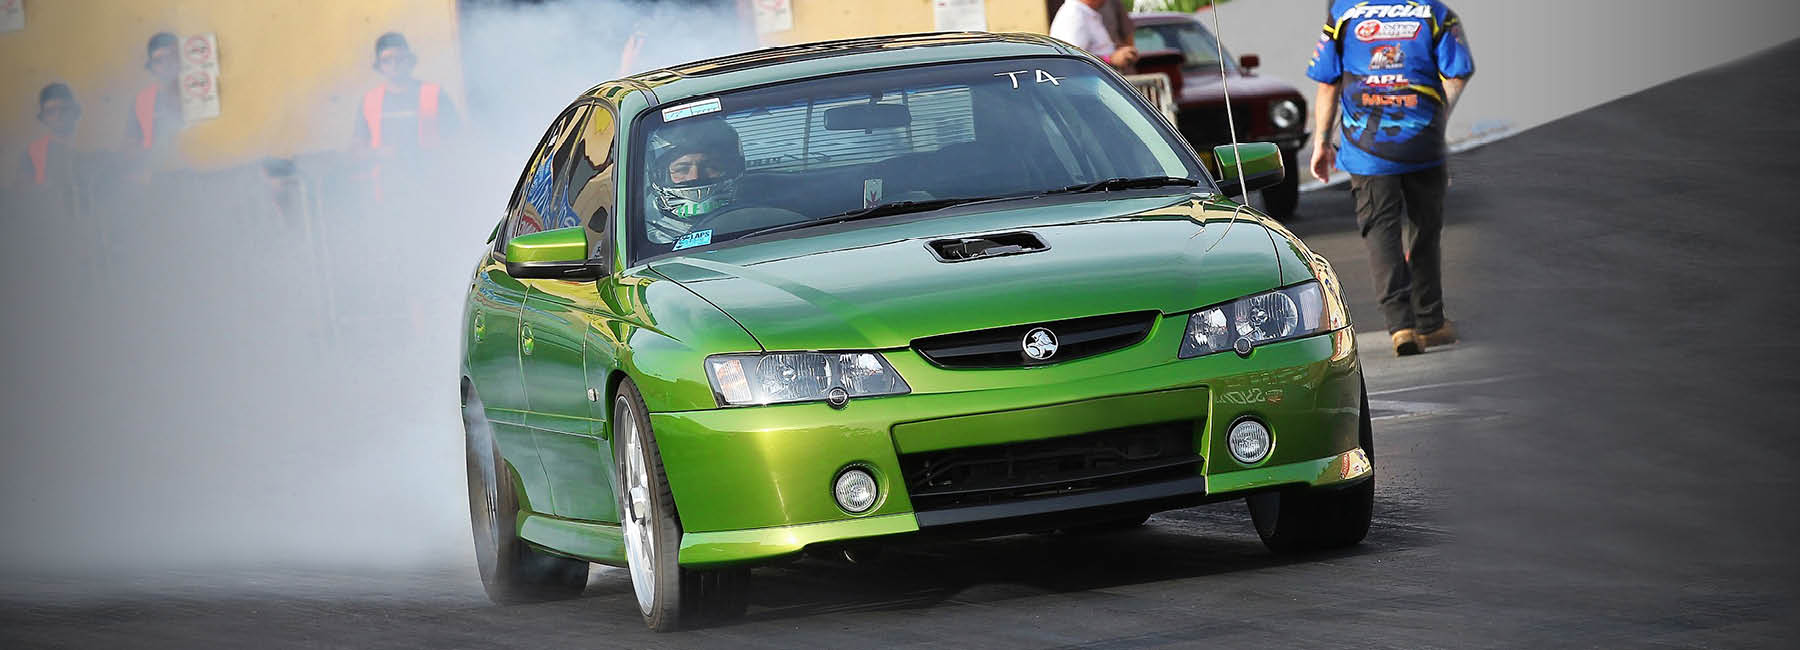 green holden racing car at sydney dragway